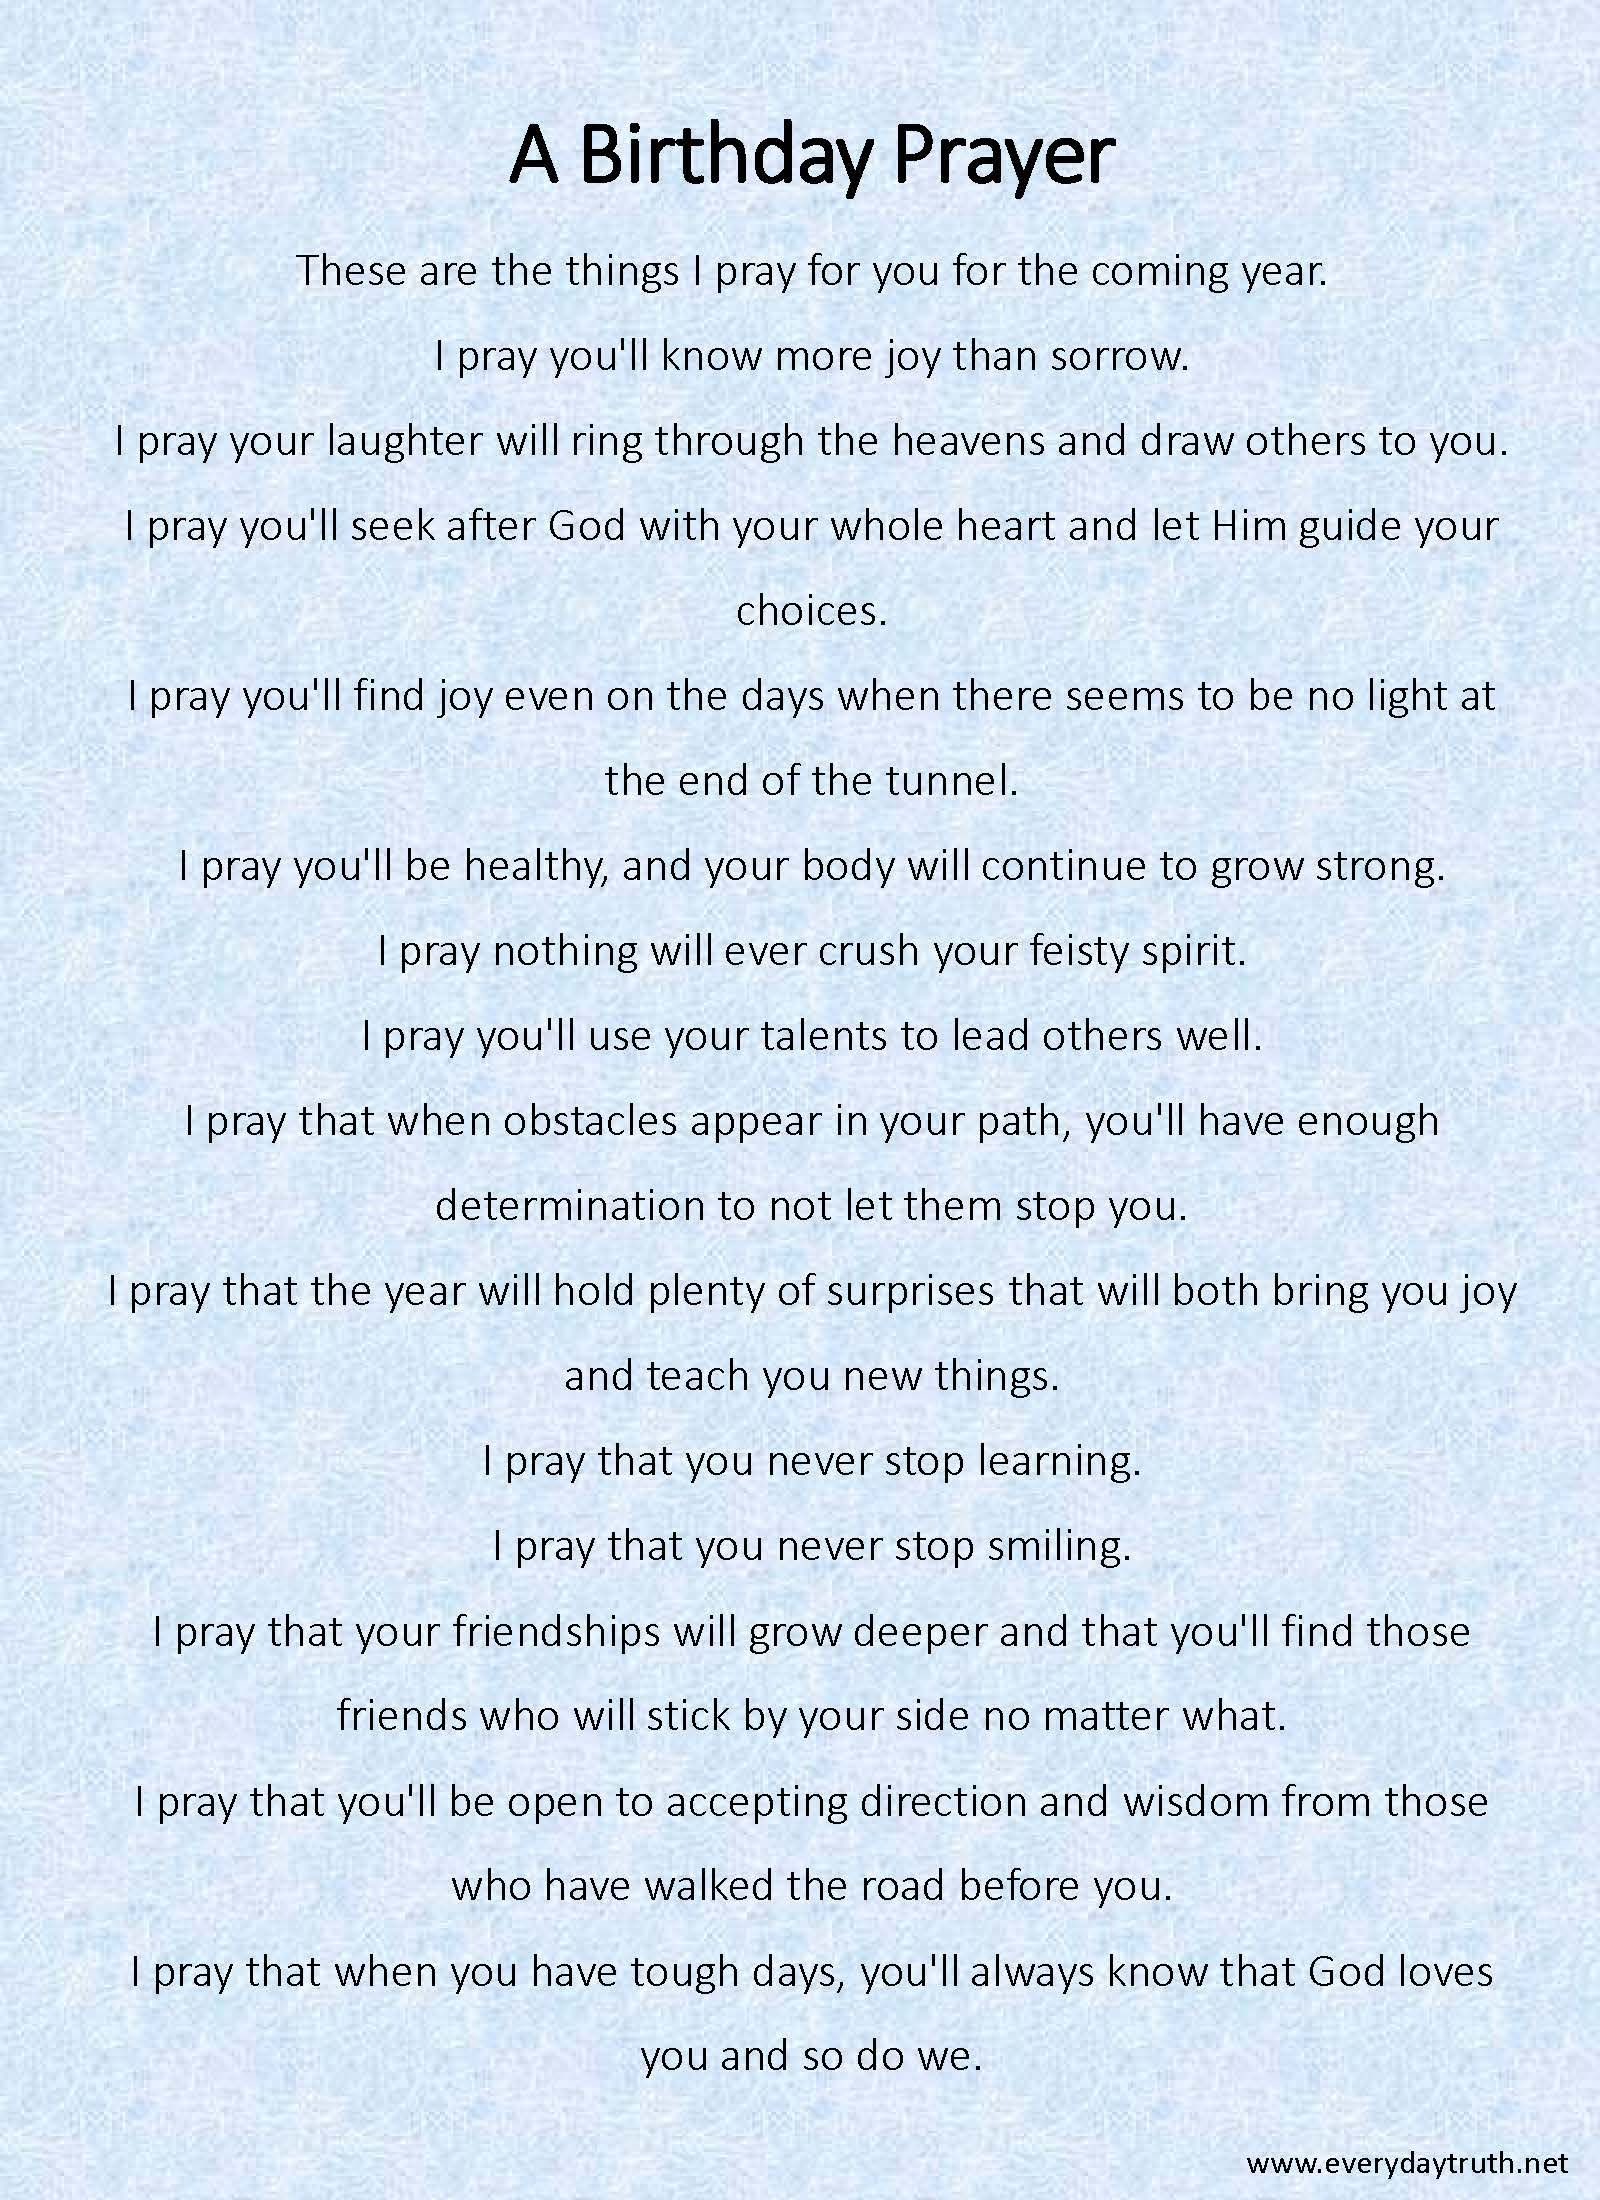 a birthday prayer from everyday truth she writes her children a birthday prayer each year what a great idea